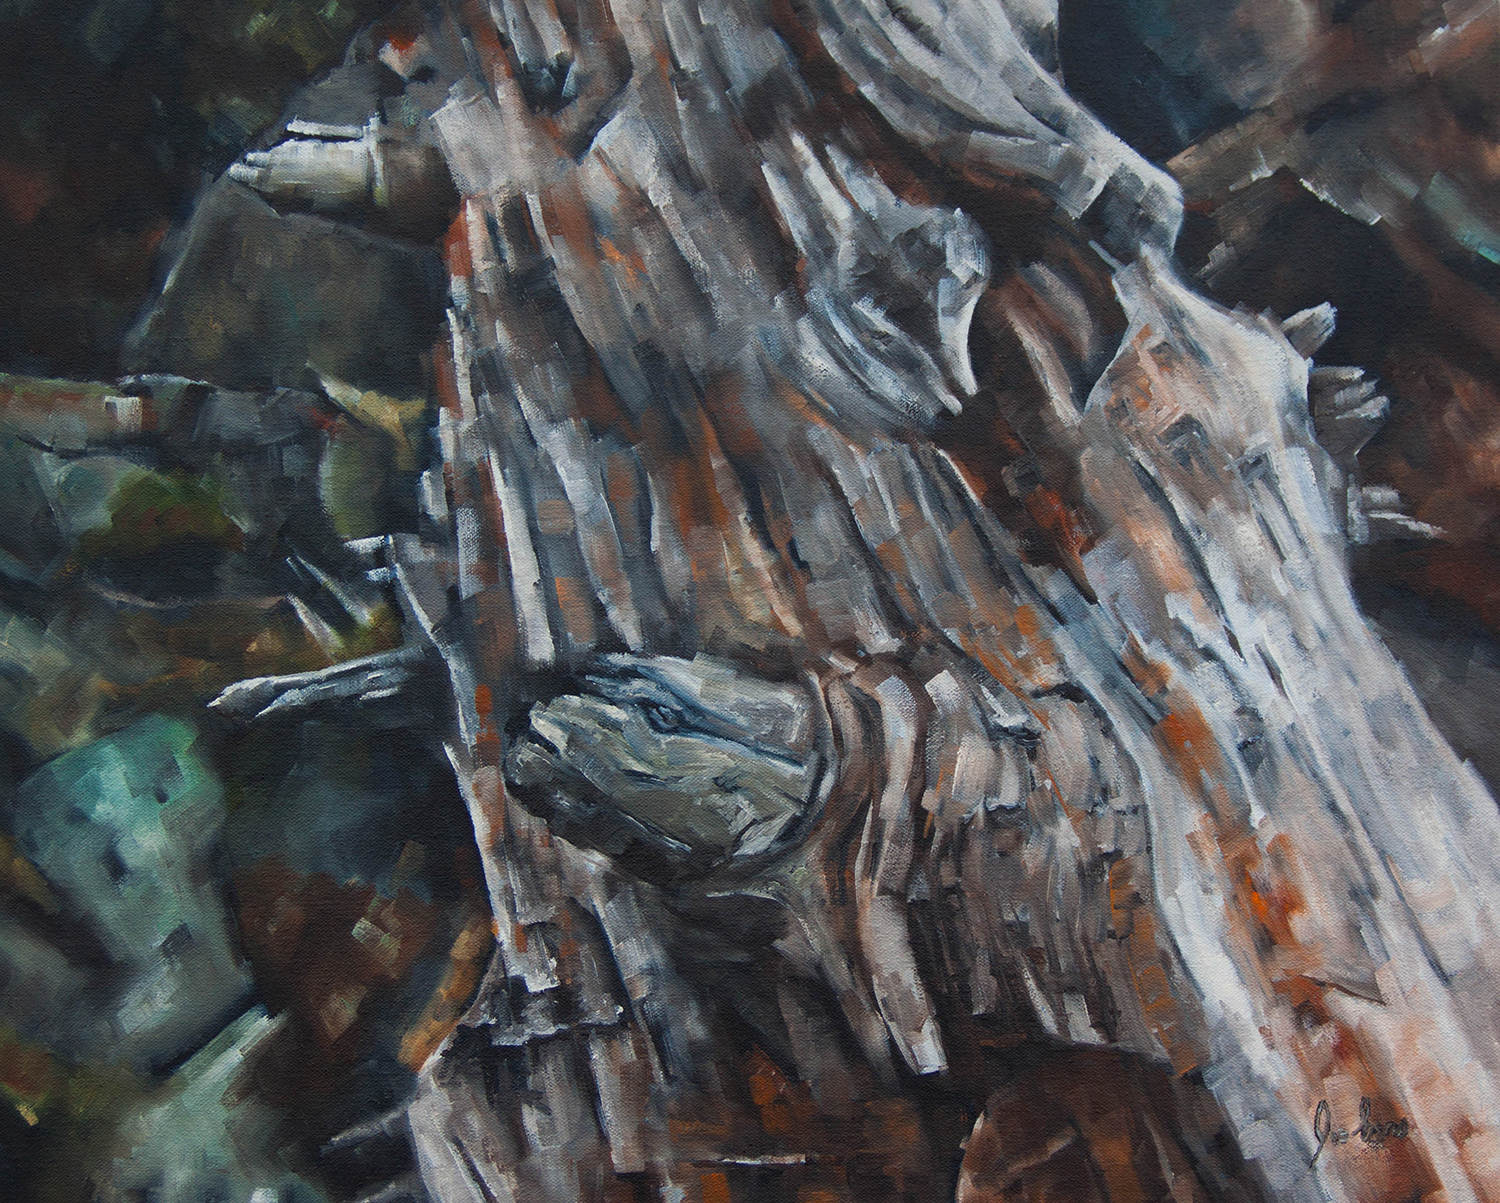 """Lindeman Lake Deadwood"" is a still life oil painting by Joe Enns from a photo that Joe took while on a hike up to Lindeman Lake in Chilliwack Lake Provincial Park near Chilliwack, British Columbia."